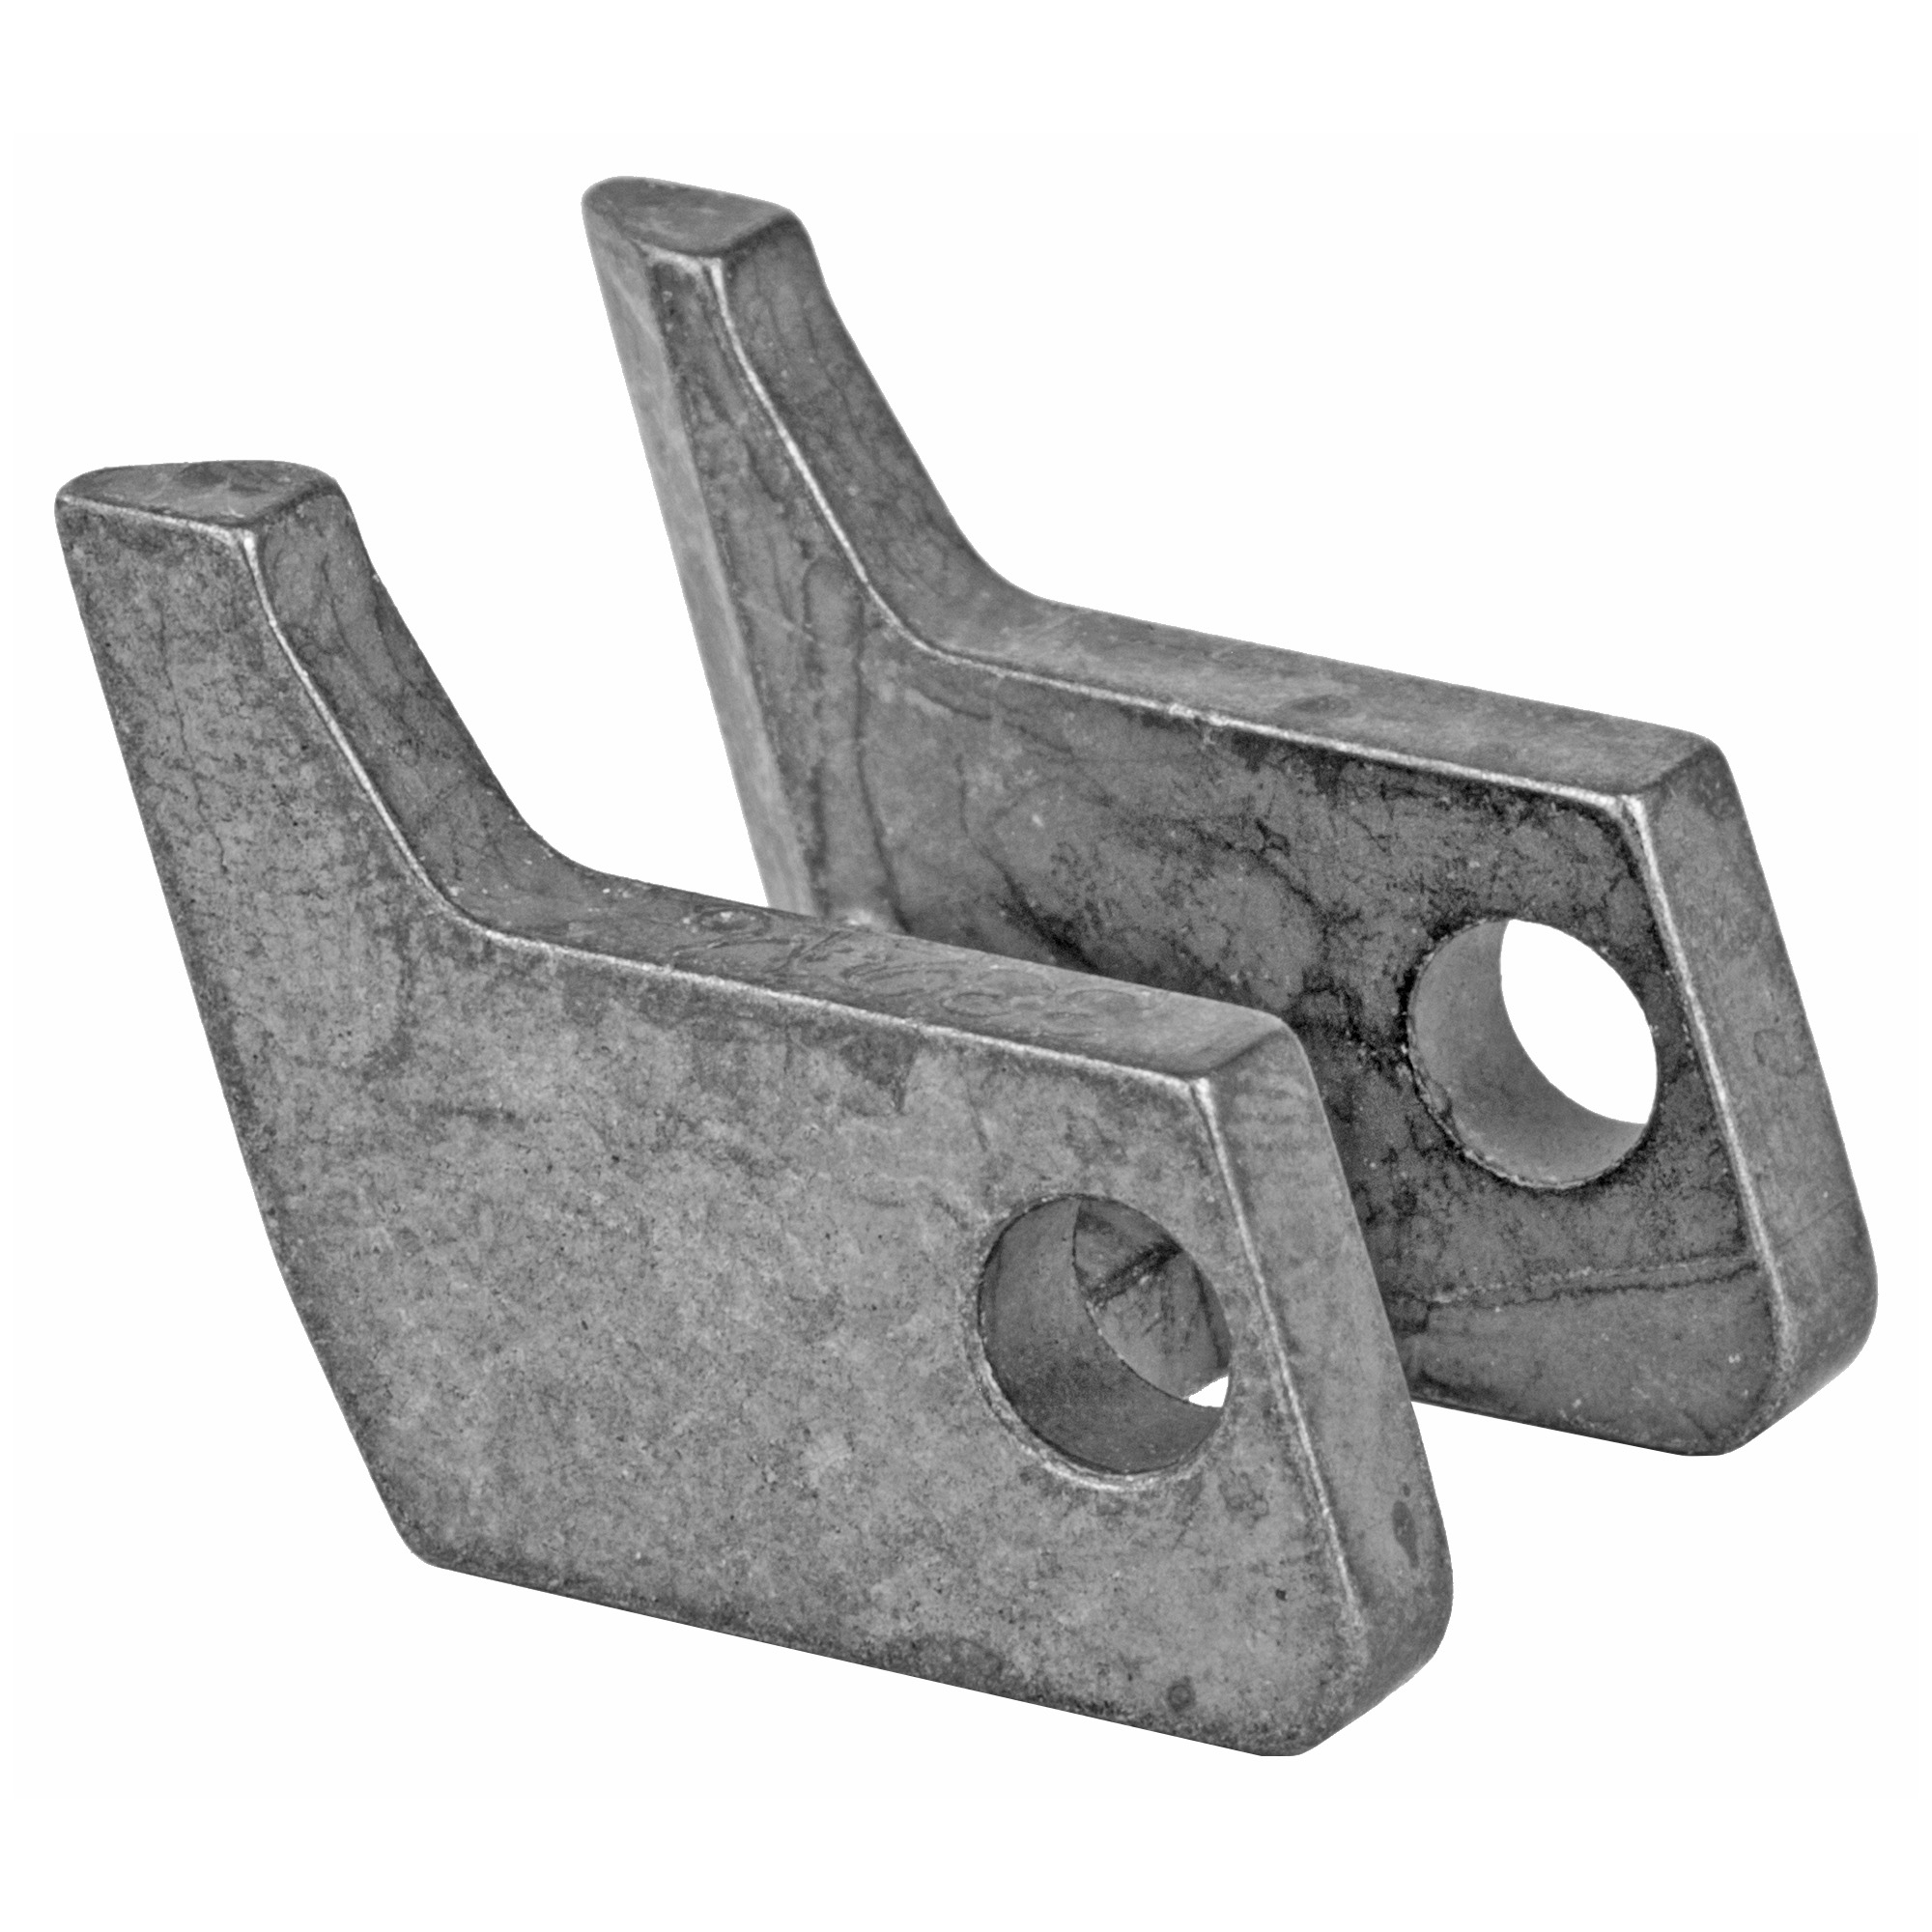 Glock Locking Block - G42/43